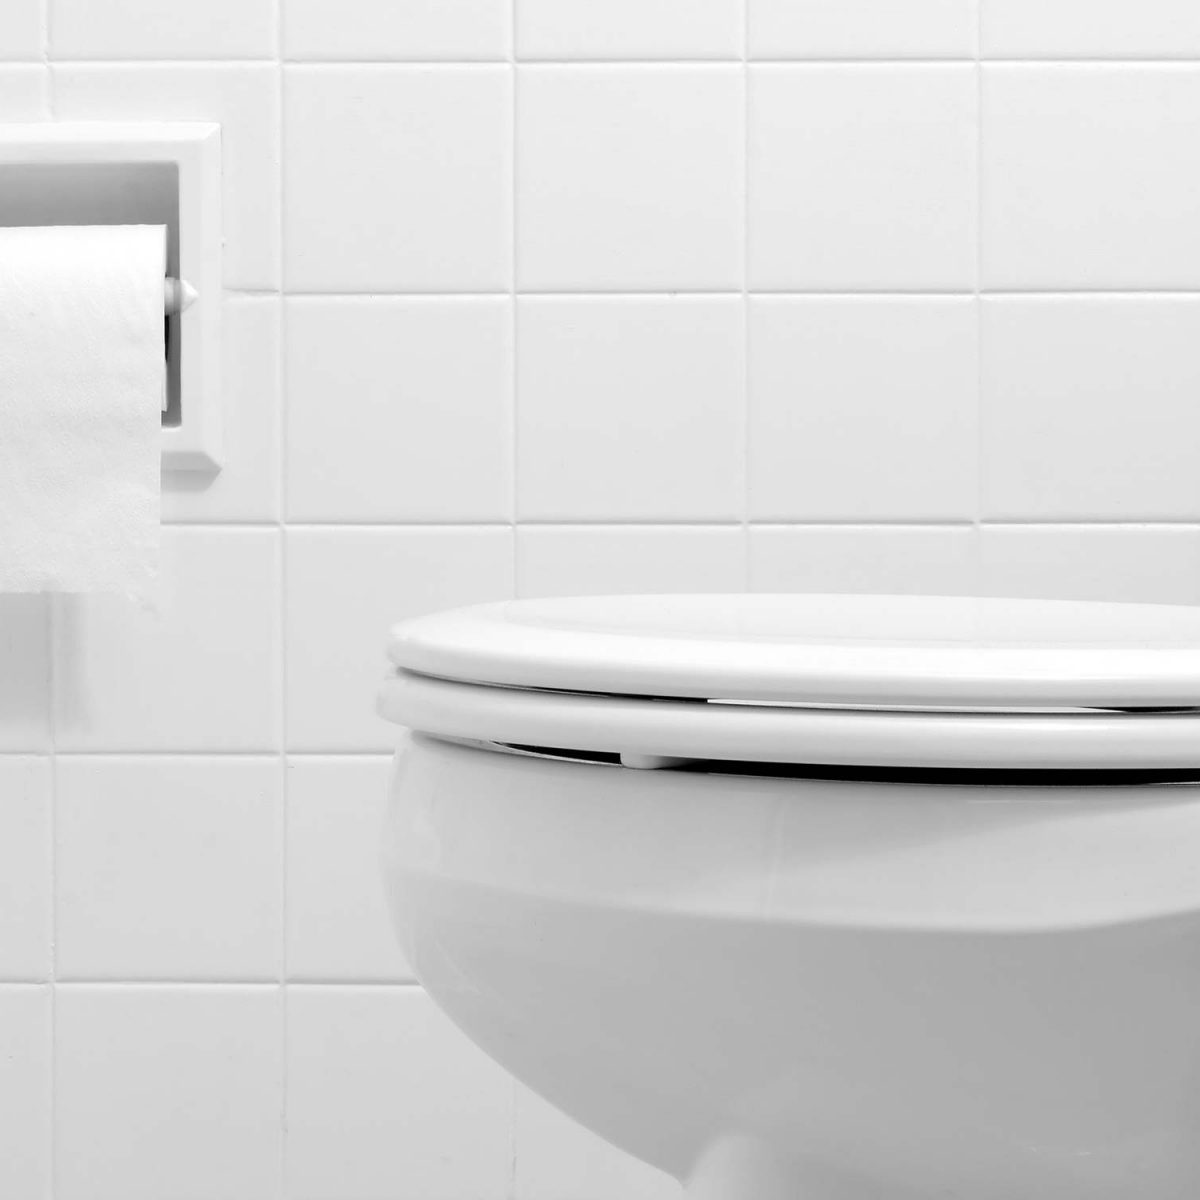 7 Symptoms of a Urinary Infection Everyone Should Know